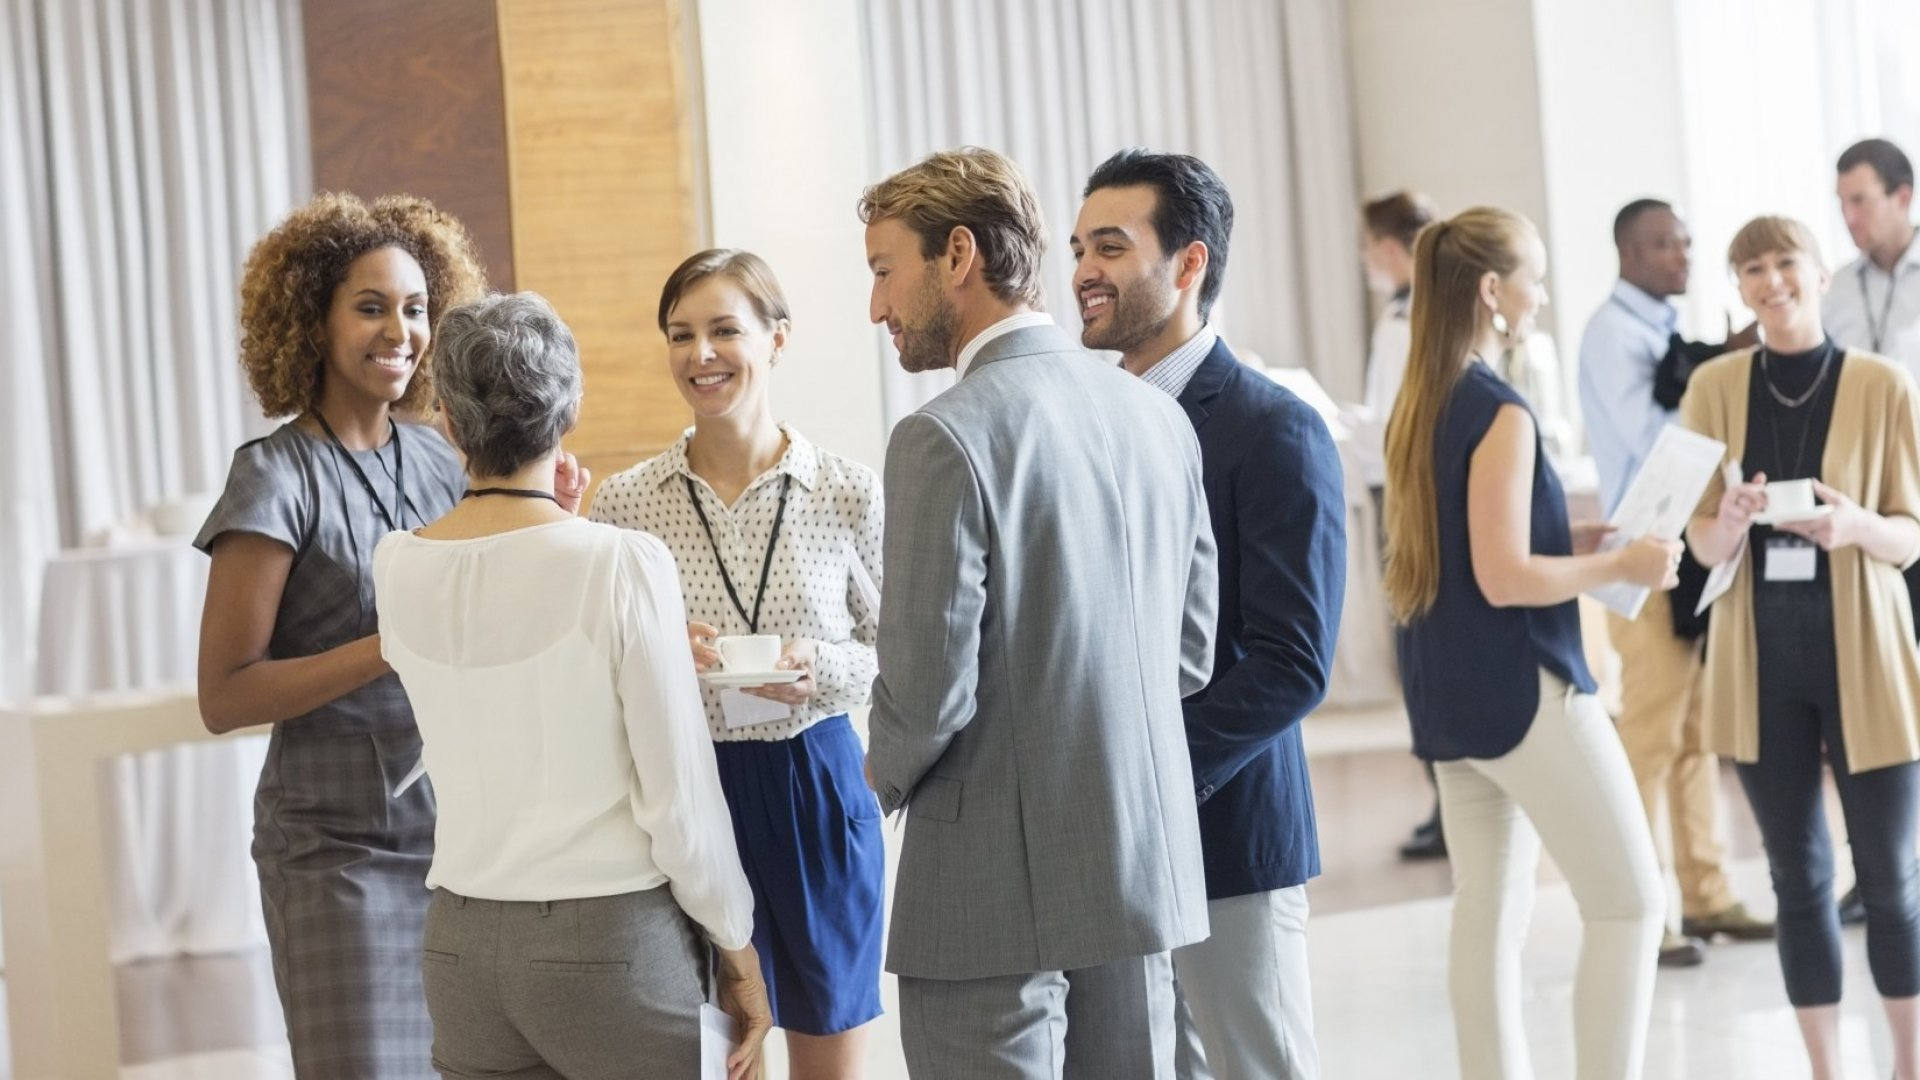 Shy and Self-Conscious in Group Settings? The Perfect Way to Overcome Your Fear of Small Talk